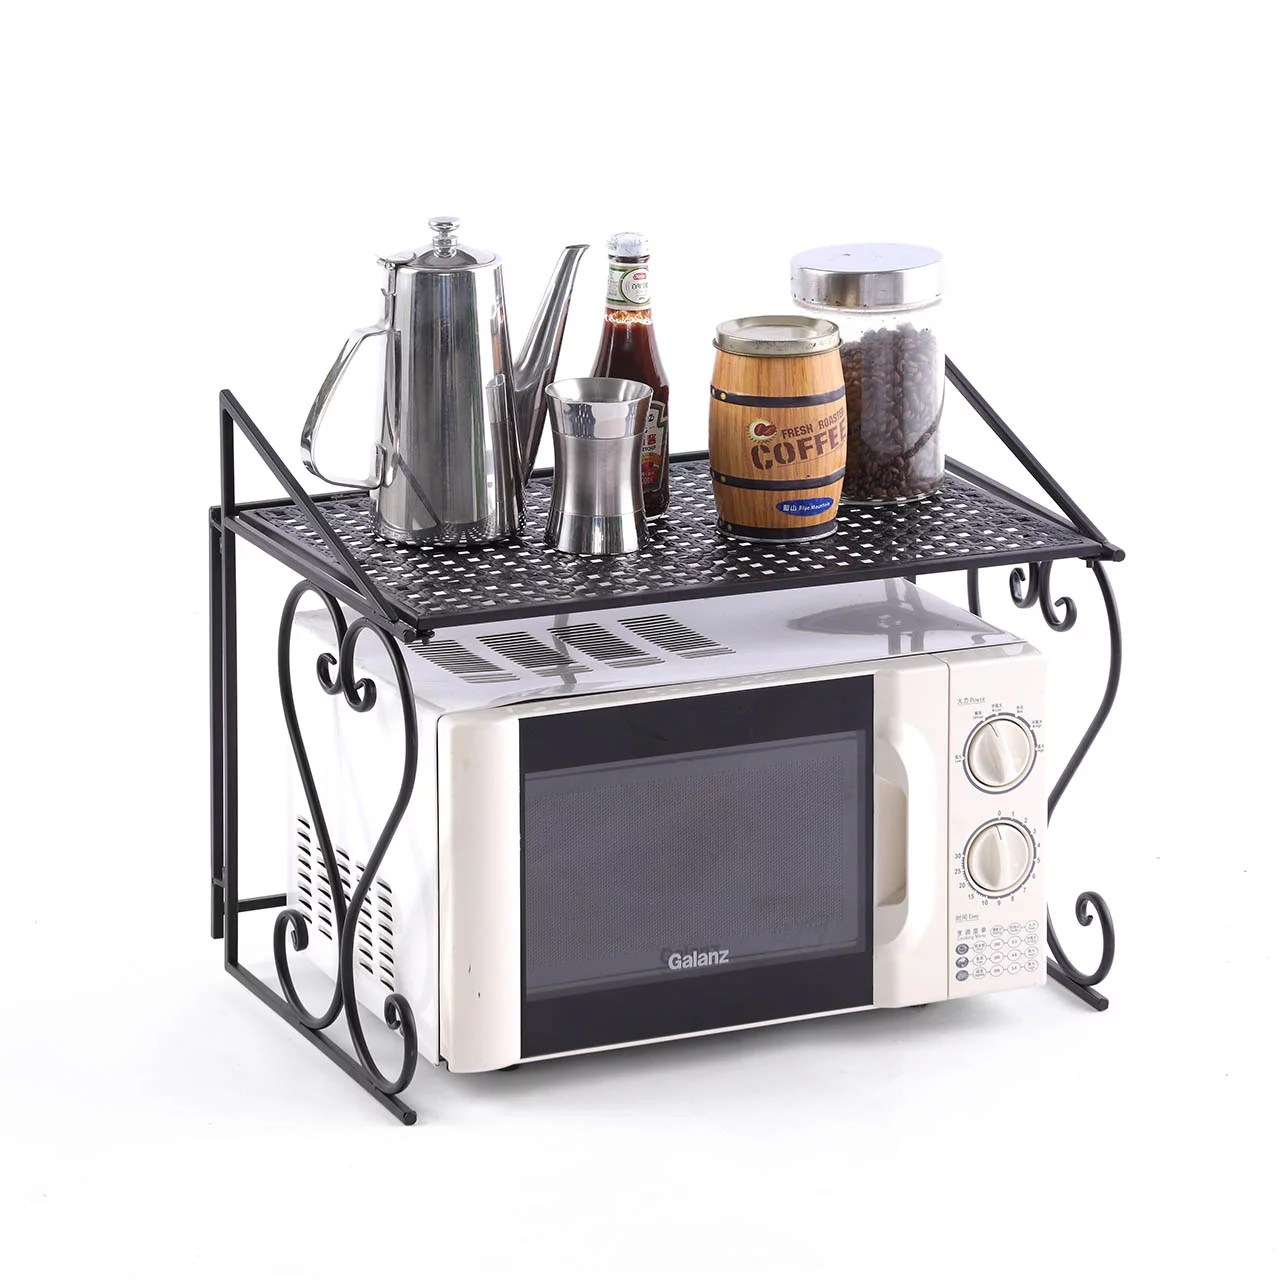 metal microwave oven rack shelf kitchen shelves counter and cabinet shelf by dazone walmart com